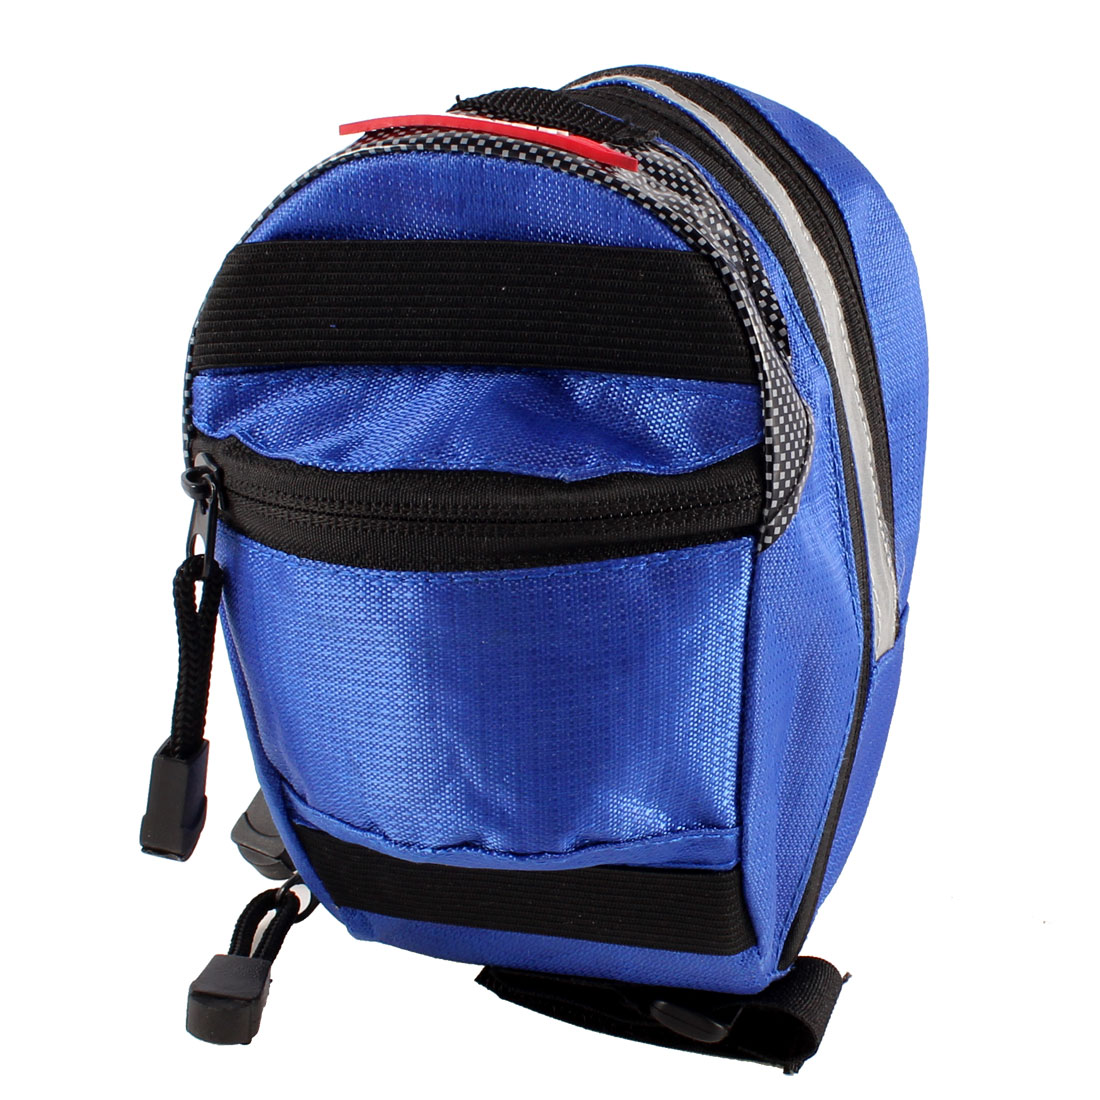 Mount Quick Release Bike Bicycle  Saddle Rear Pouch Bag Blue Black